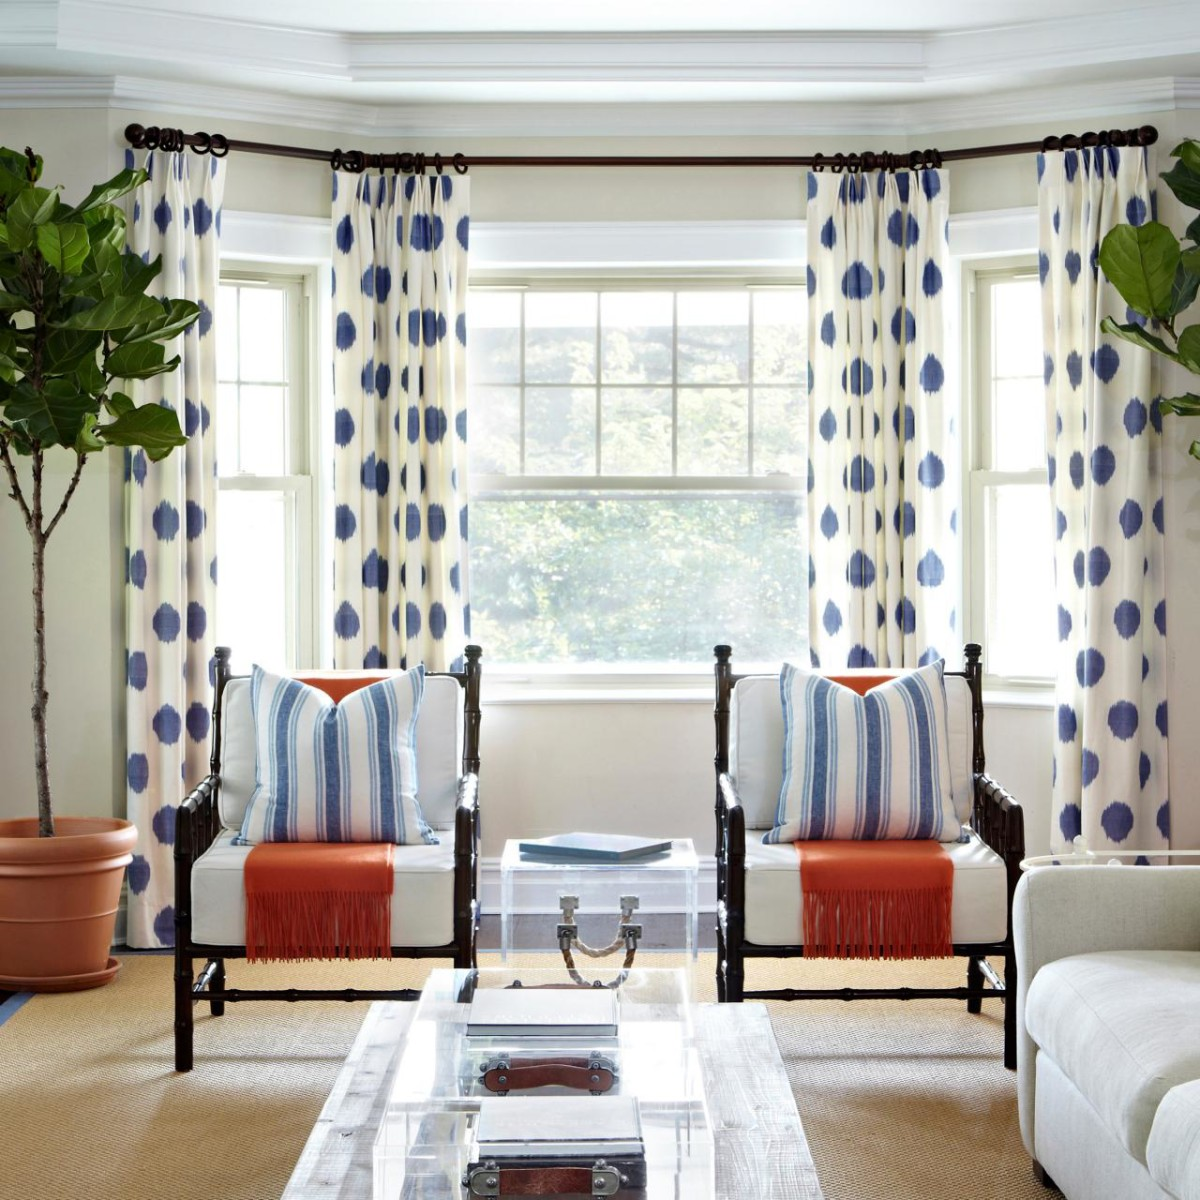 Creating-Enjoyment-with-Polka-Dot-Living-Room-Decorating-Ideas2